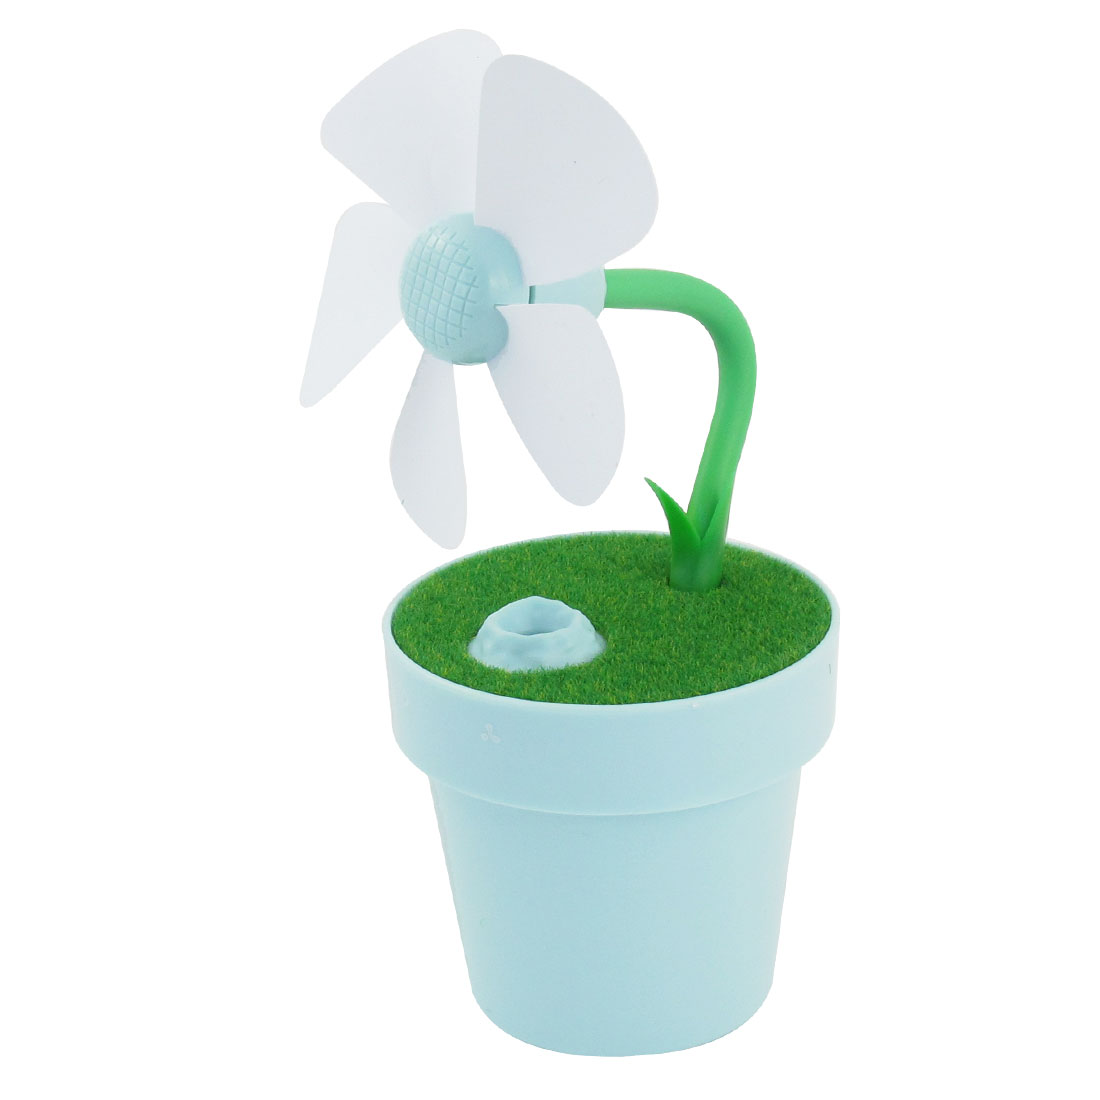 Office Desktop Adjustable Range USB Mini Flower Pot Humidifier Fan Pale Blue